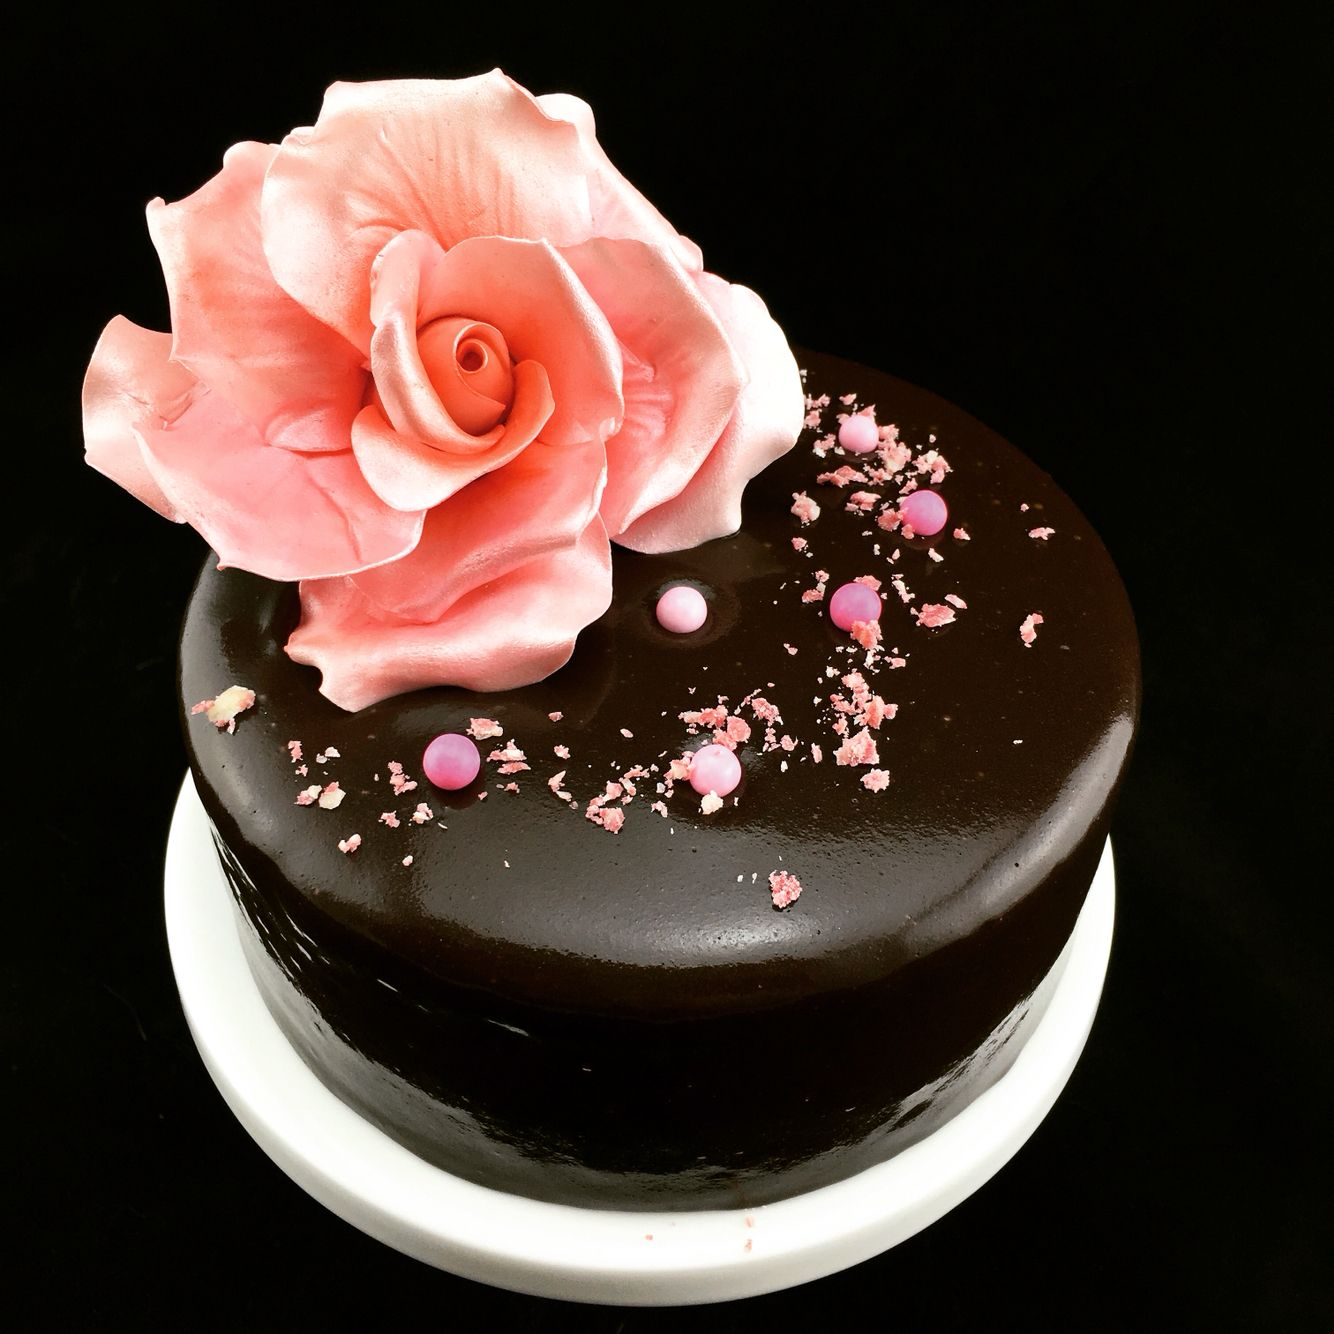 Rose Nail For Cake Decorating: Elegant Chocolate Mirror Glaze Cake With Pink Sugar Rose